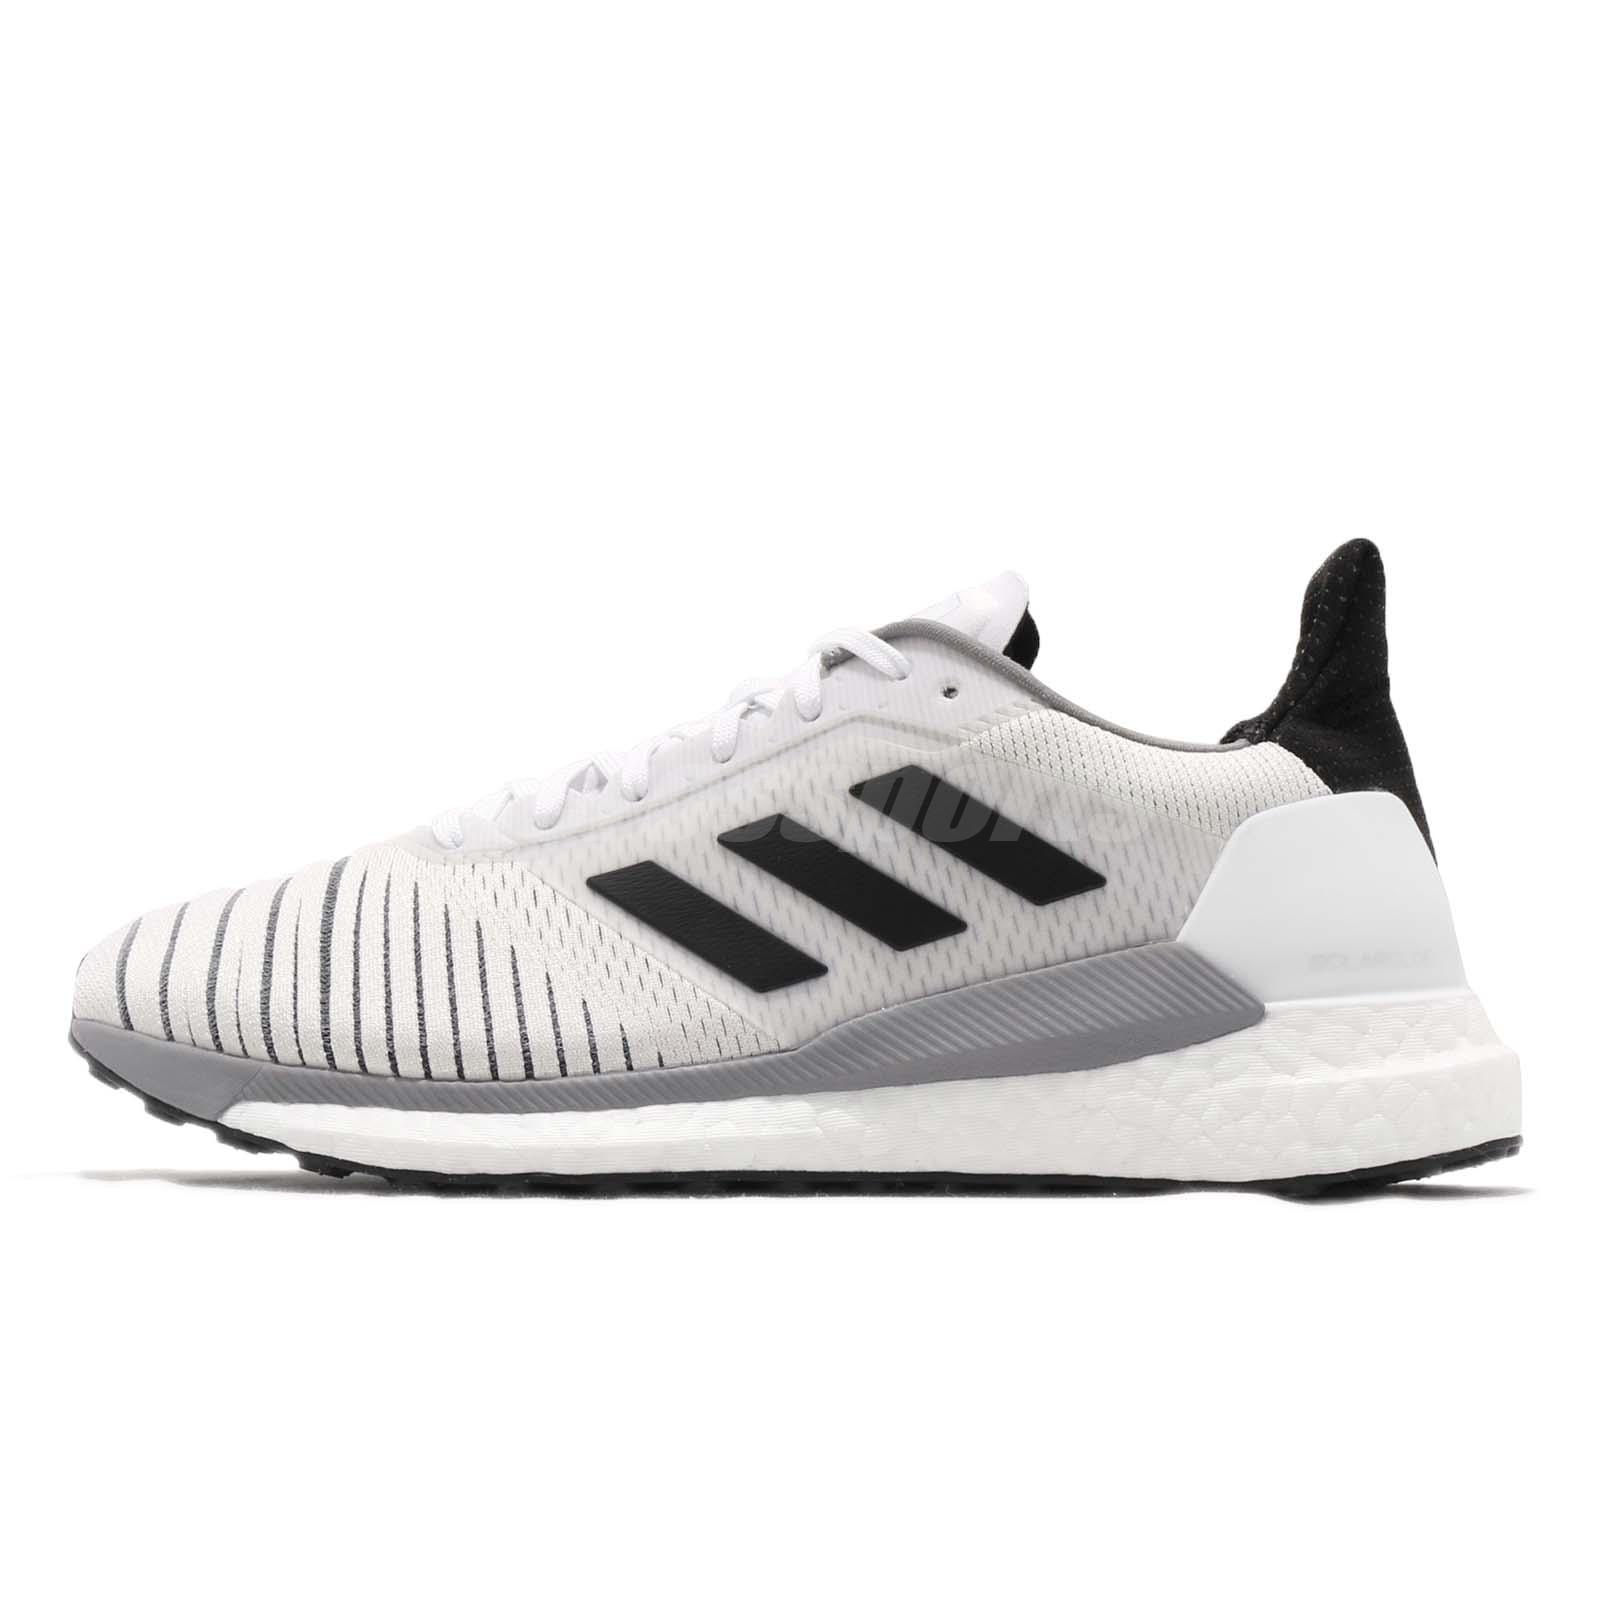 aa07bc0de71 adidas Solar Glide M Boost White Black Grey Men Running Shoes Sneakers  CQ3177